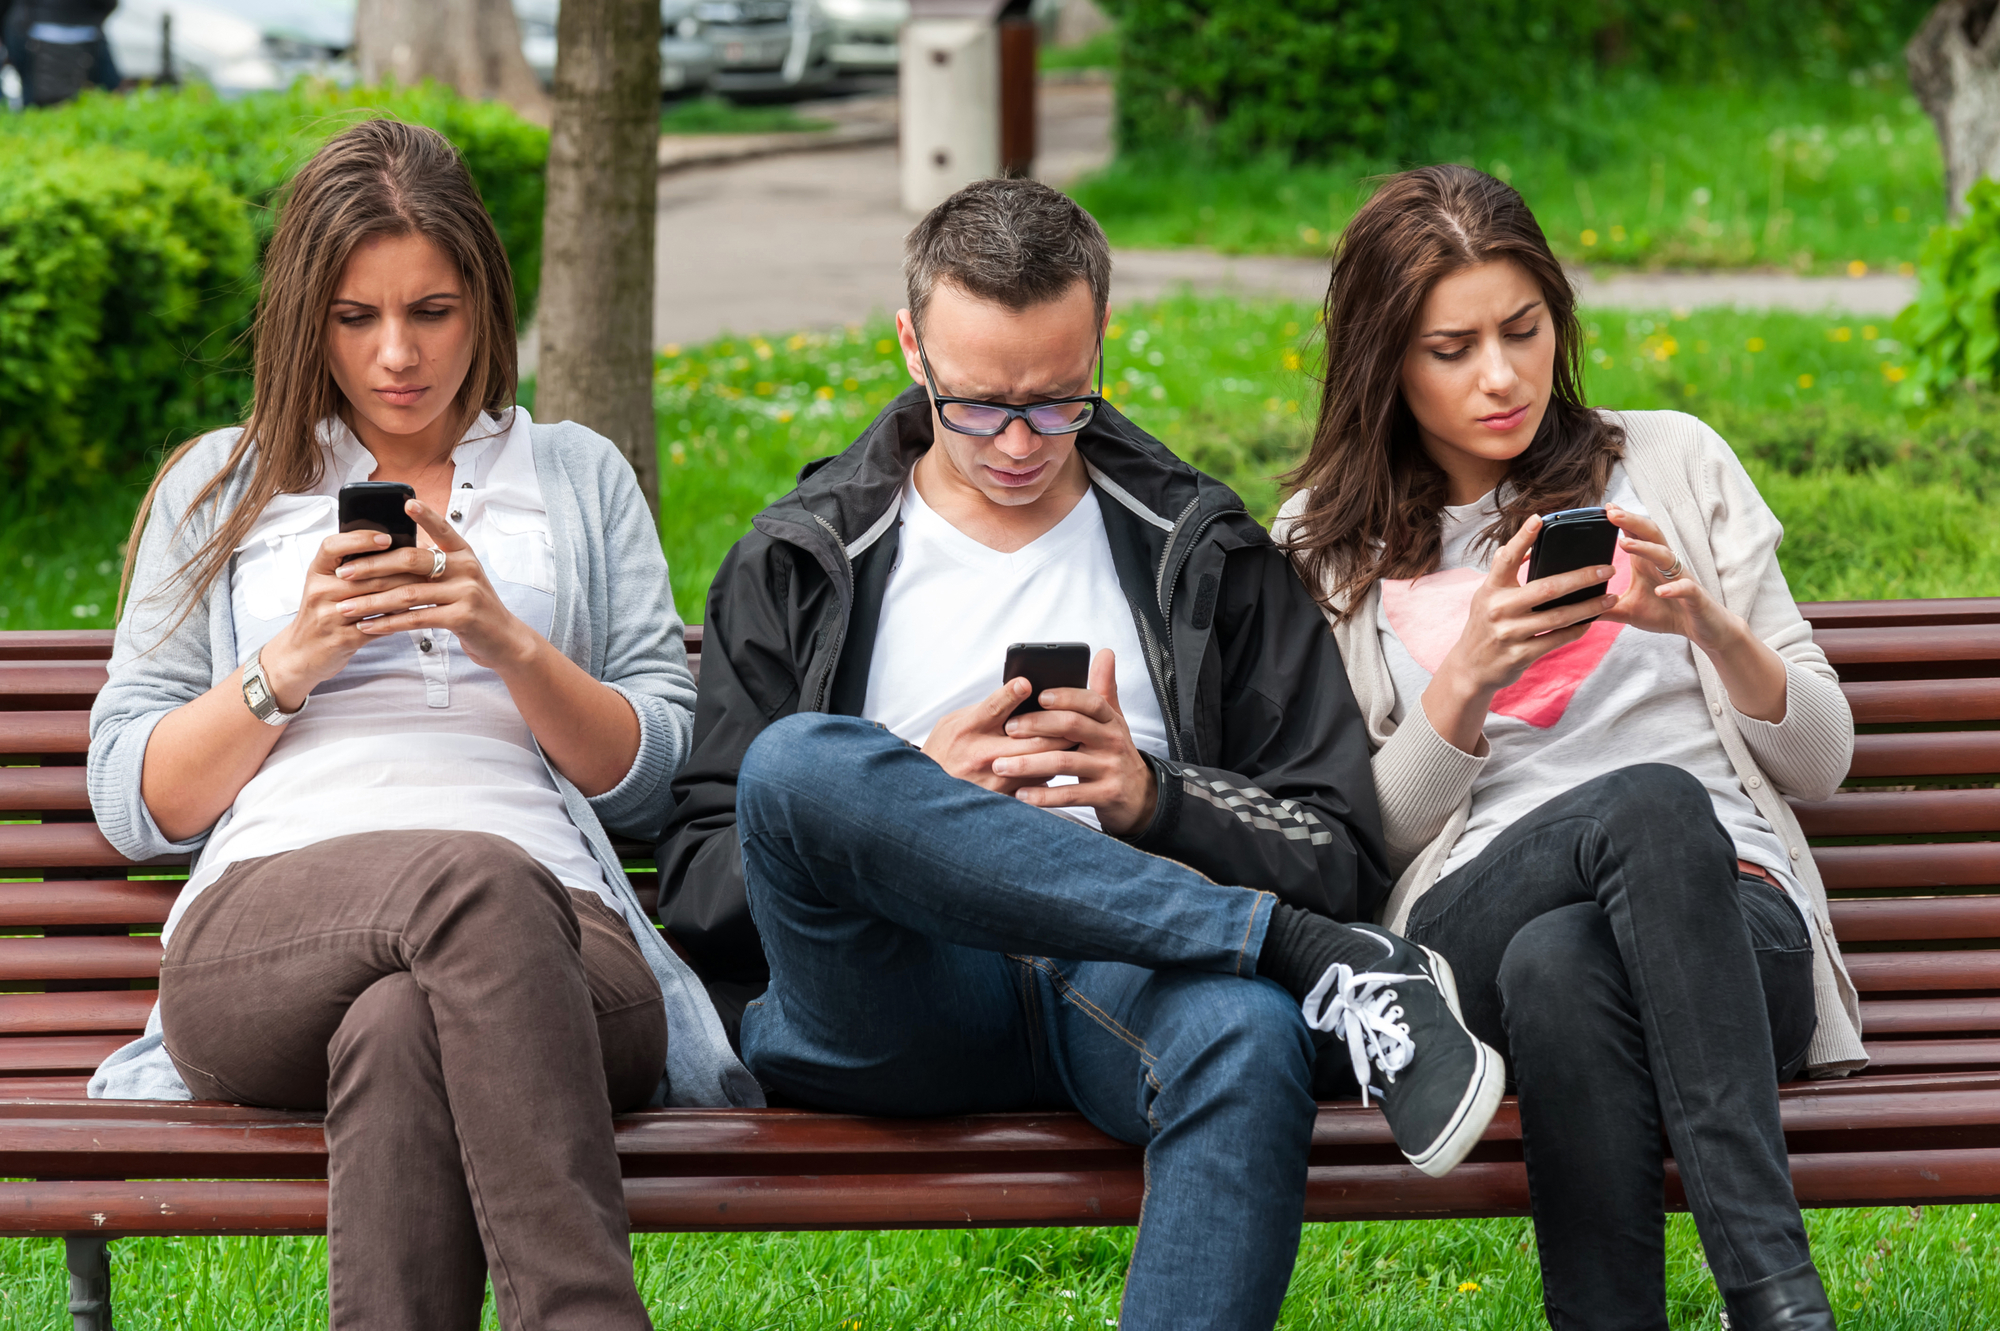 You've mastered the art of texting, emailing, and web surfing on your smartphone and computer. But along with that digital prowess, you've picked up an unexpected side effect.